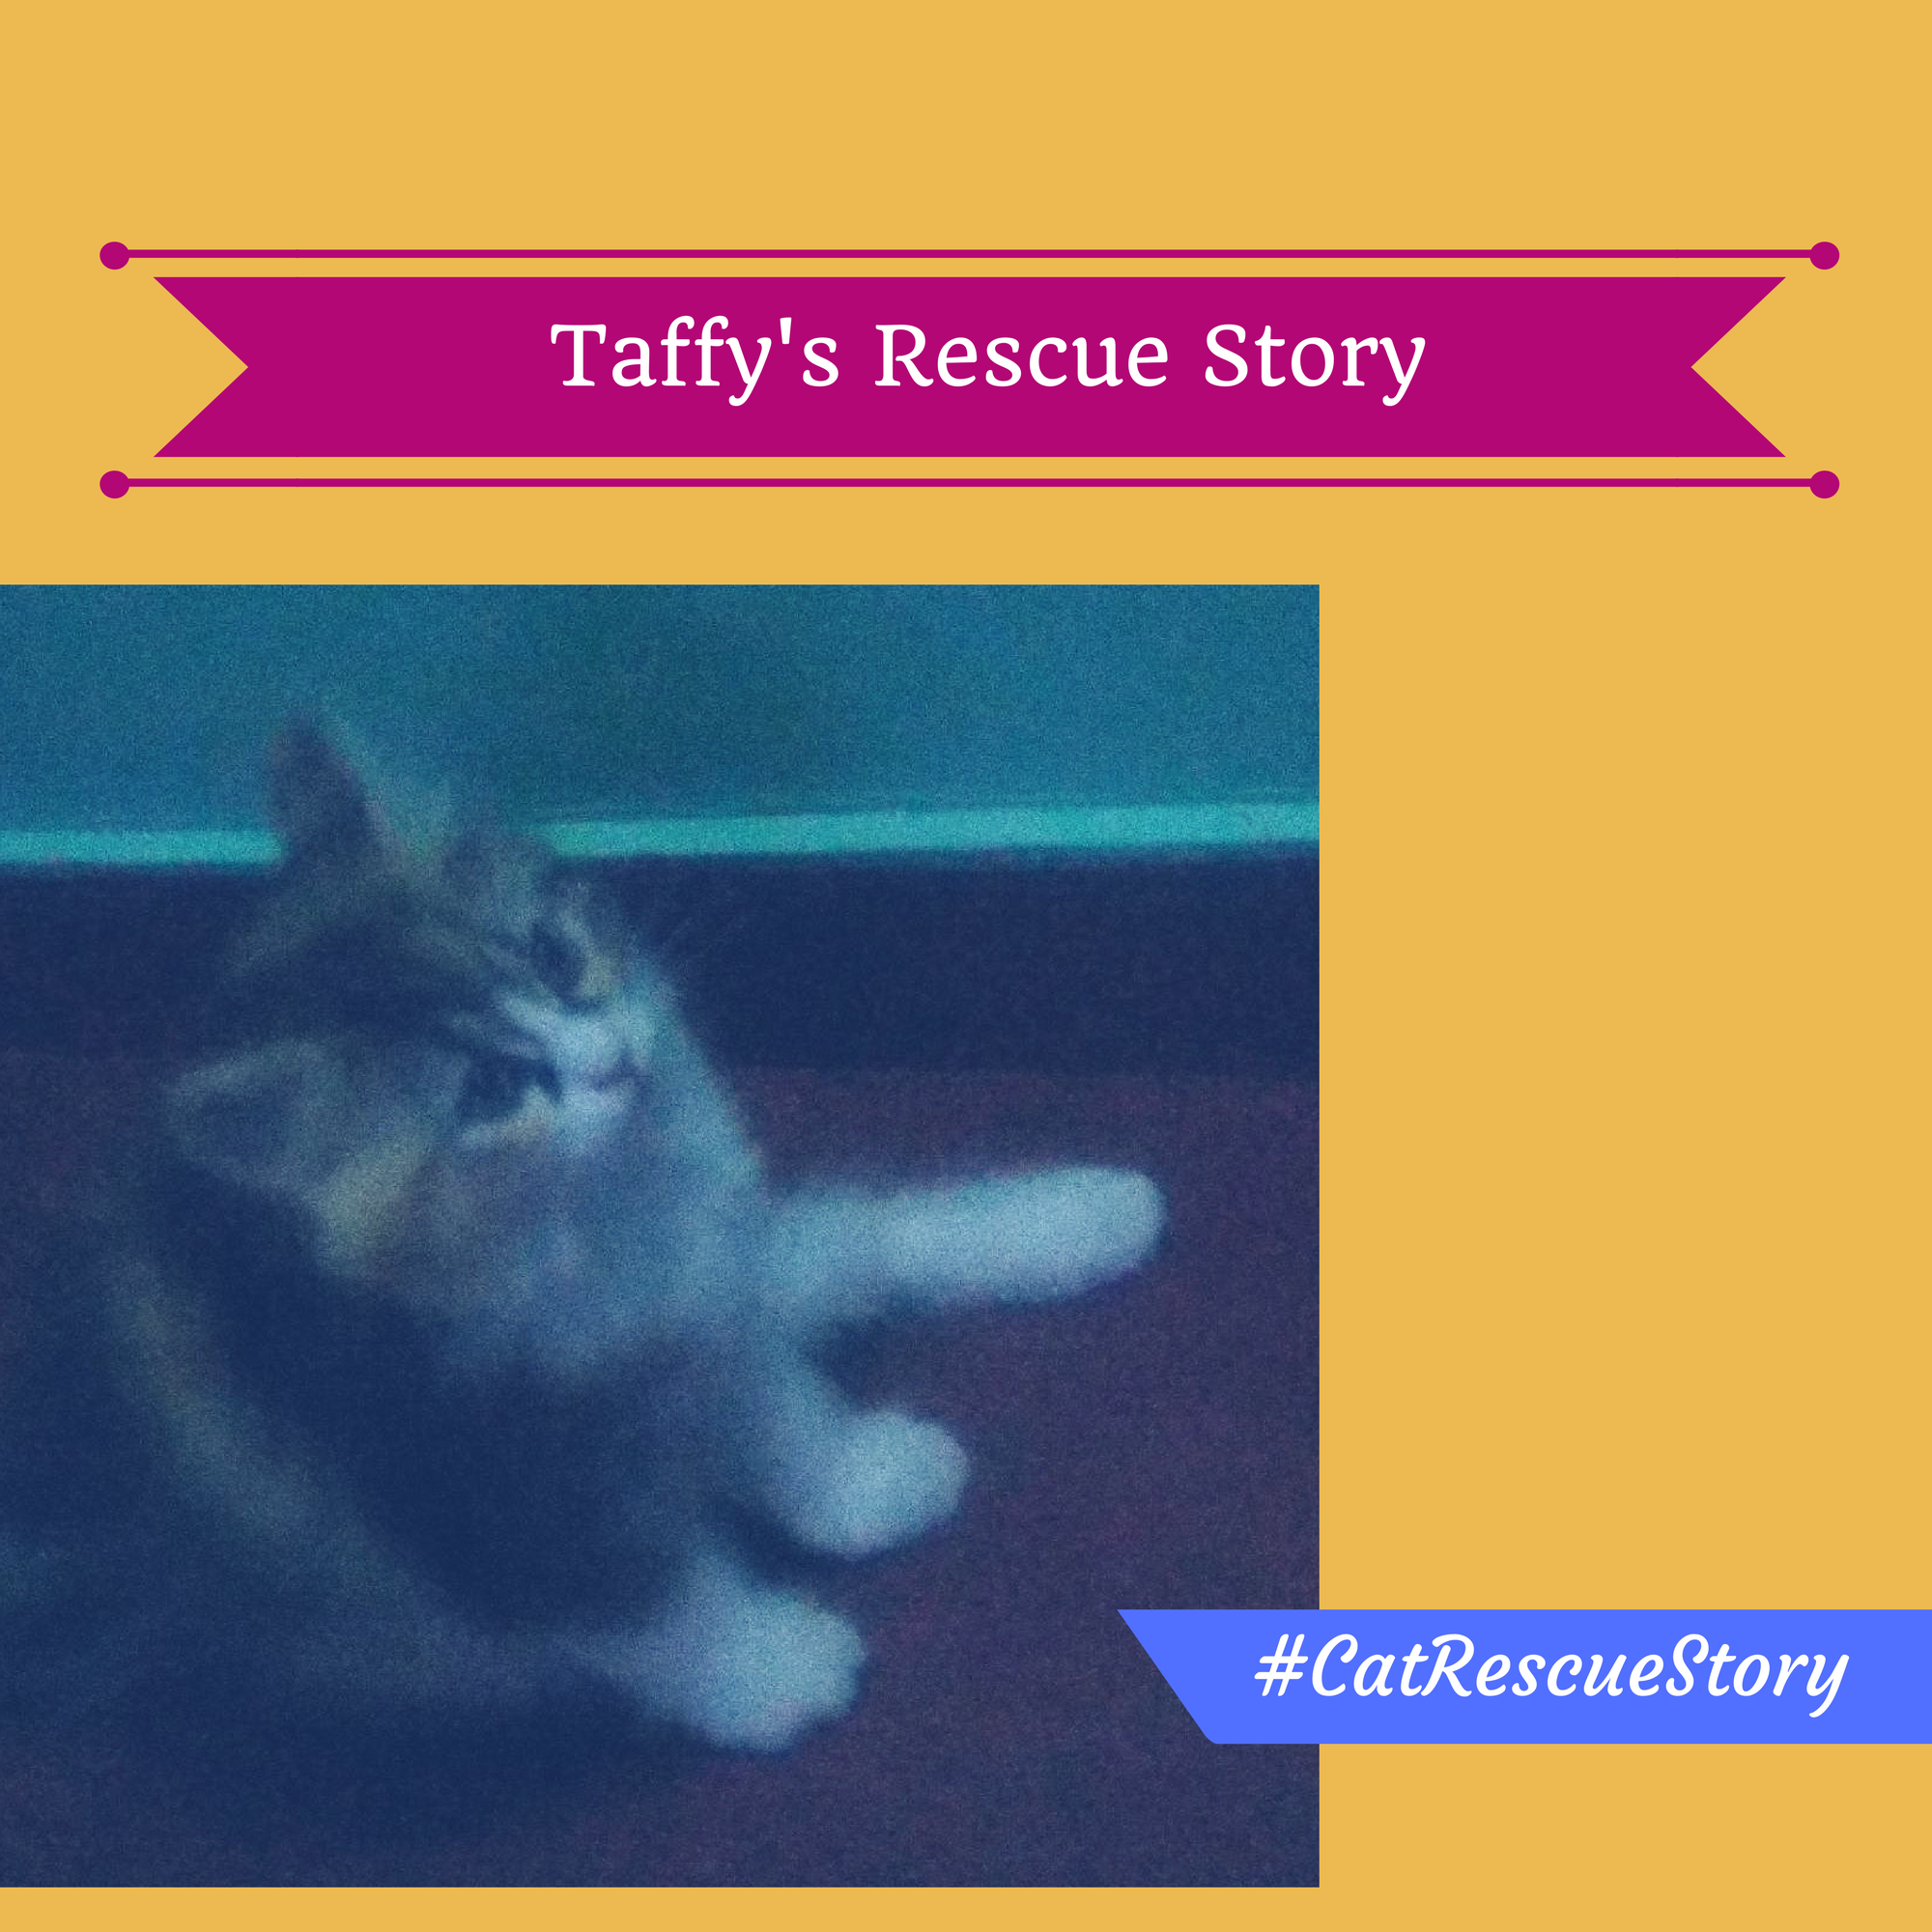 cat rescue story taffy